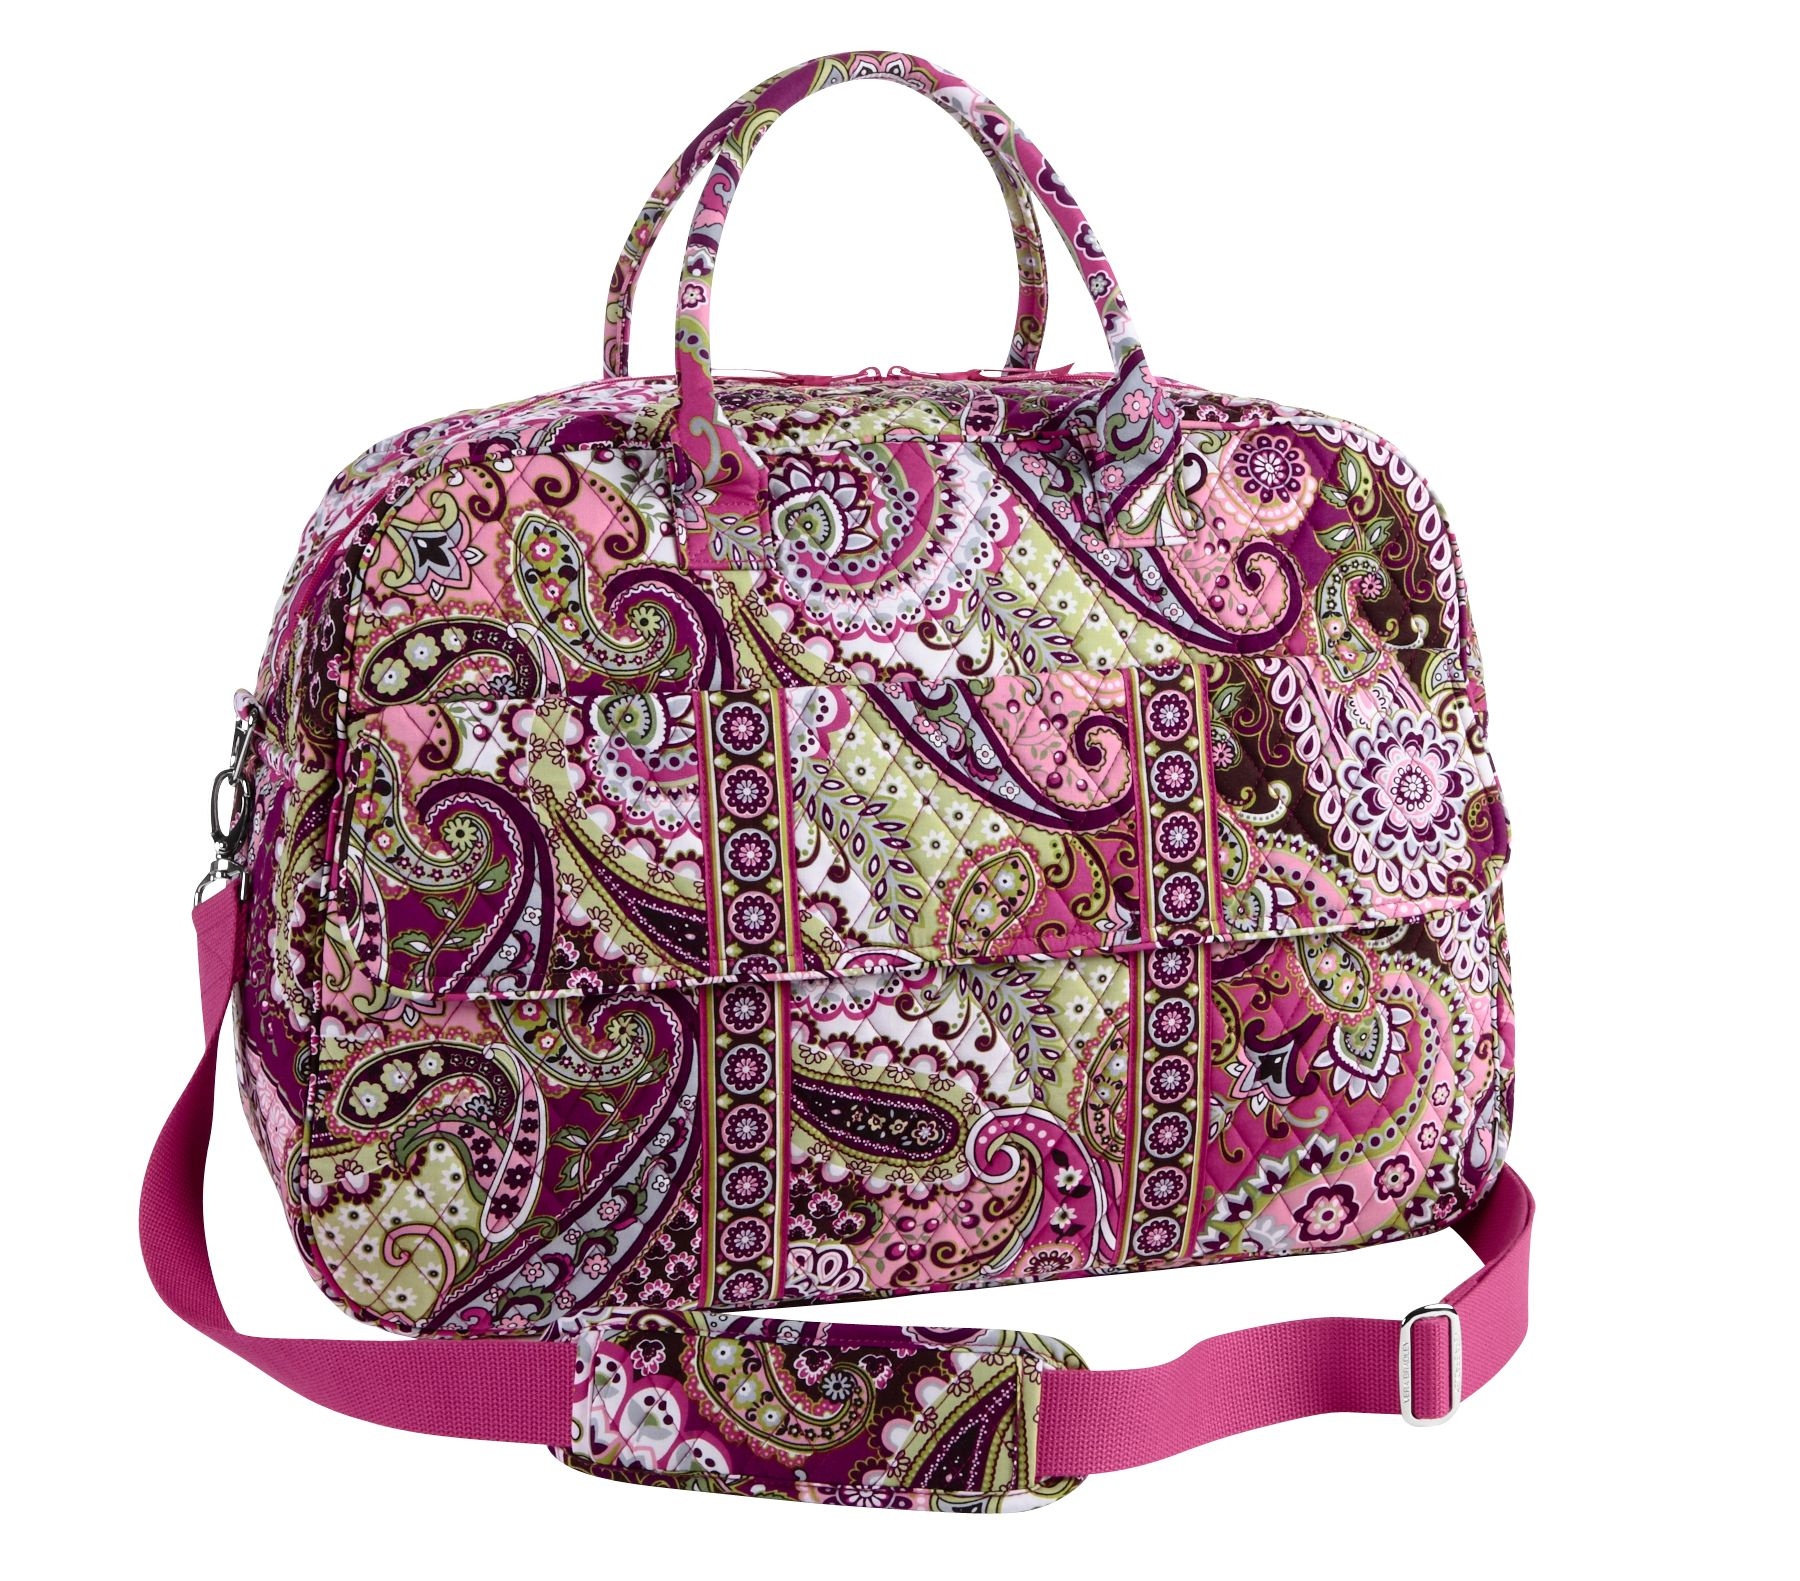 Vera Bradley Grand Traveler in Very Berry Paisley